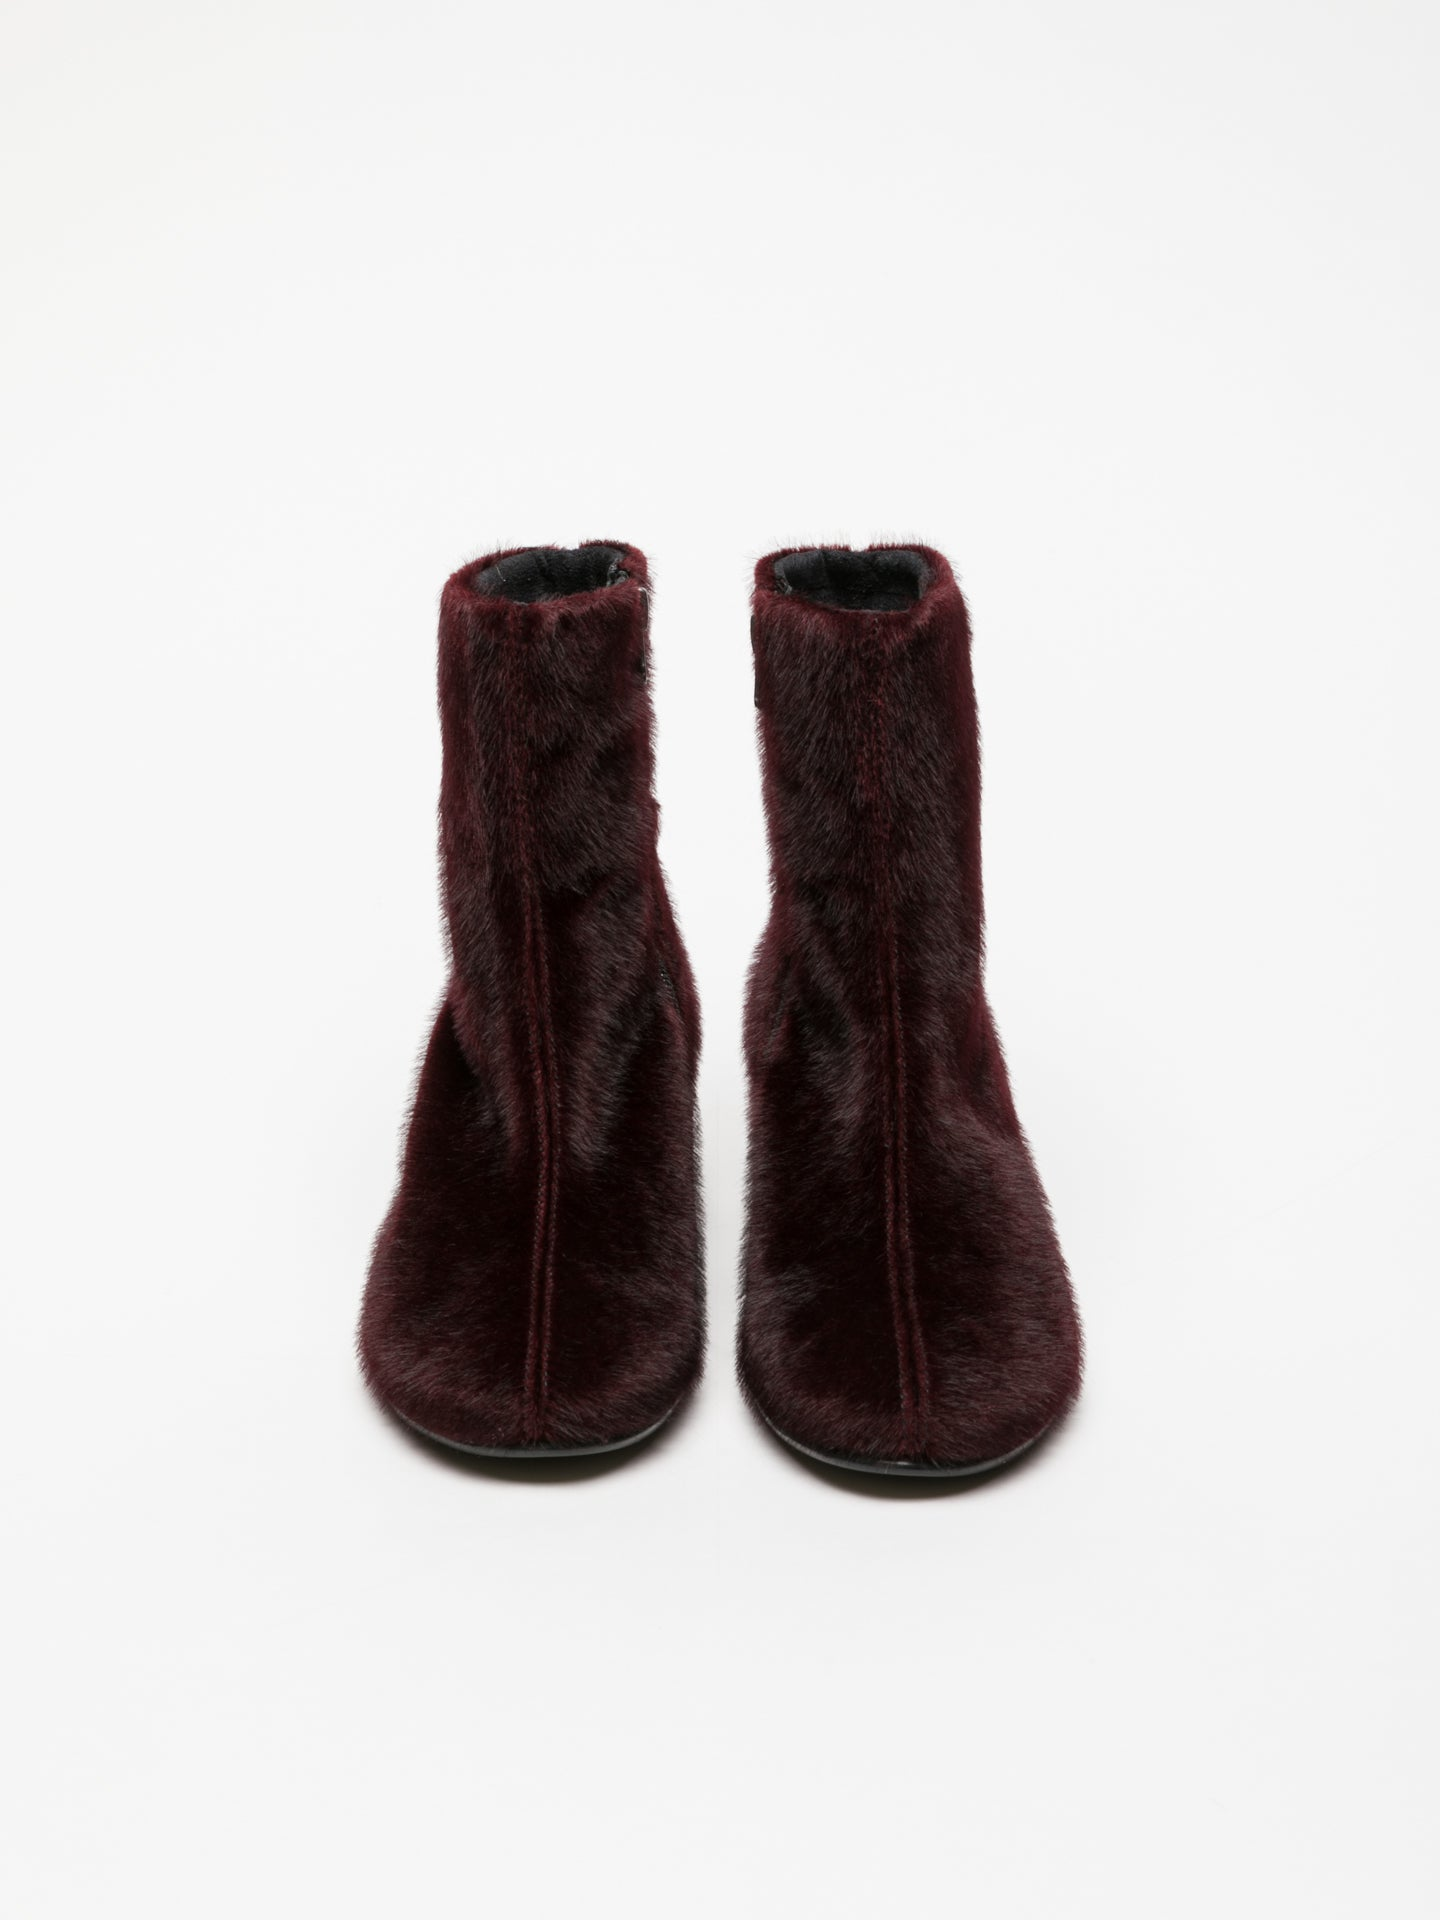 Clay's DarkRed Zip Up Ankle Boots